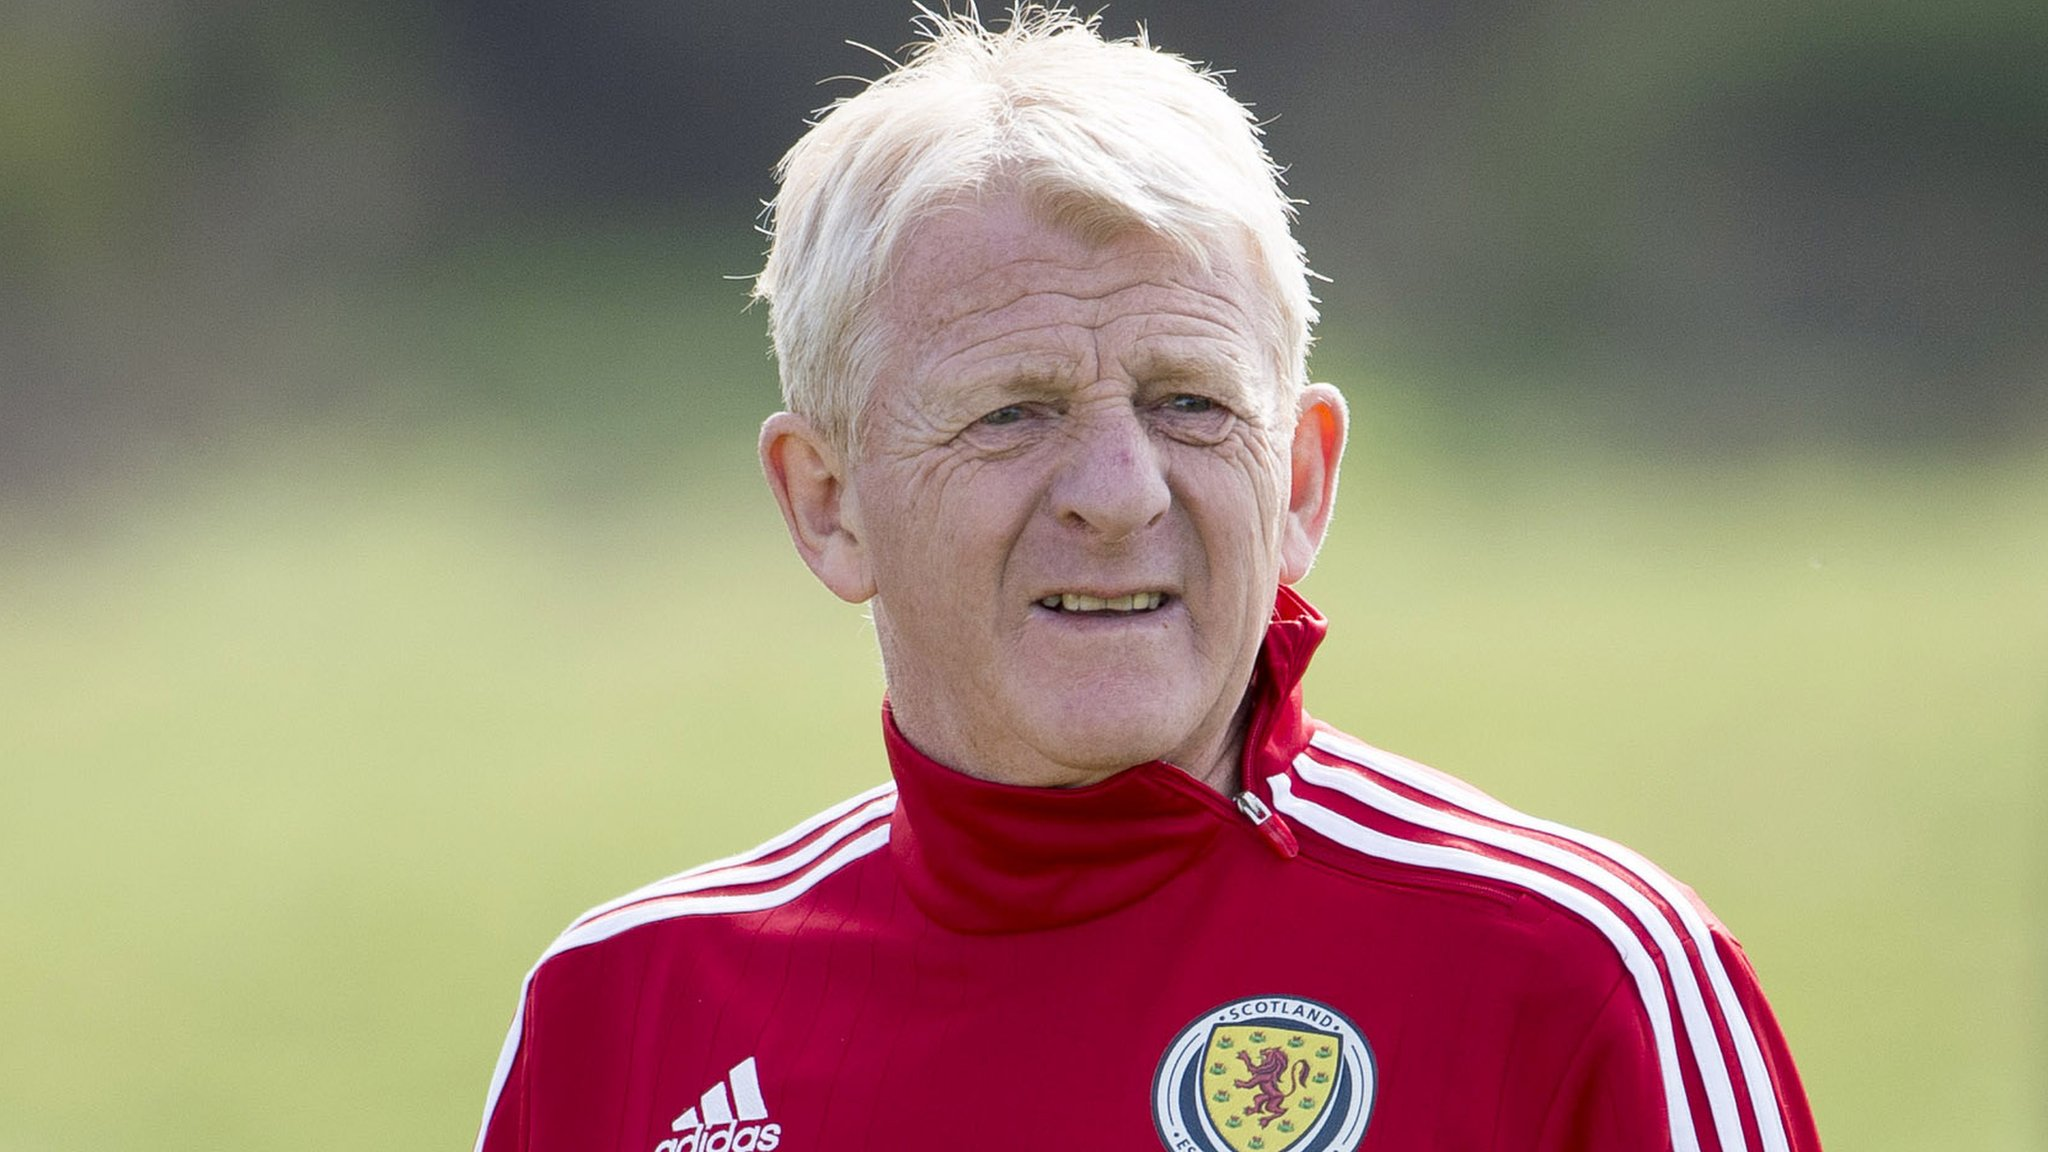 Strachan: 'Must-win match will see Scots at best'